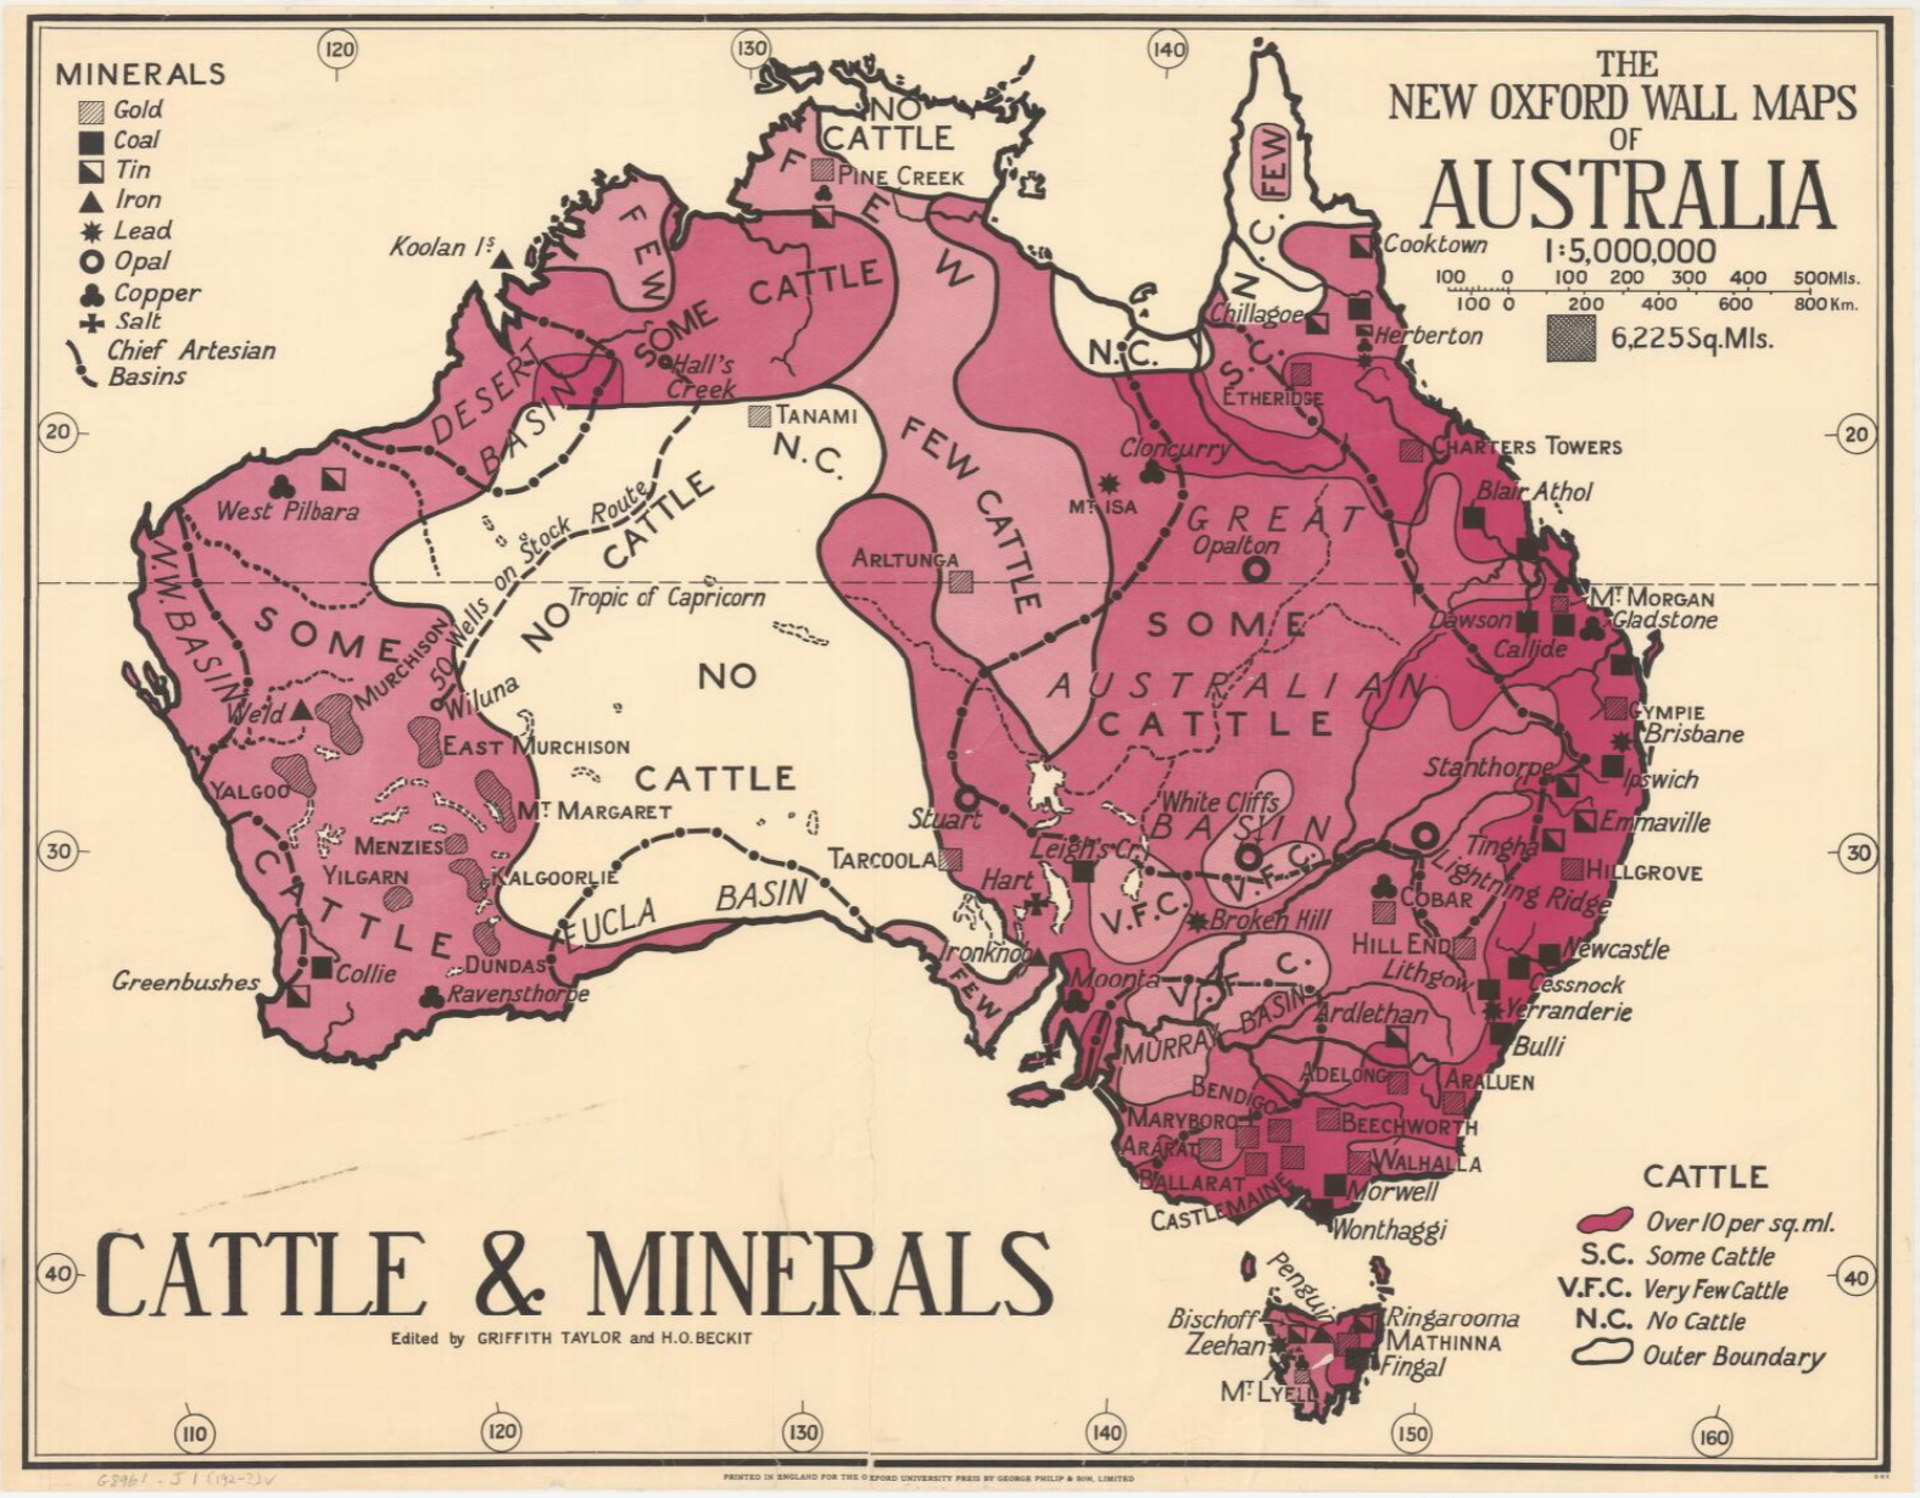 A 1920s map of Australia showing distribution of cattle and minerals